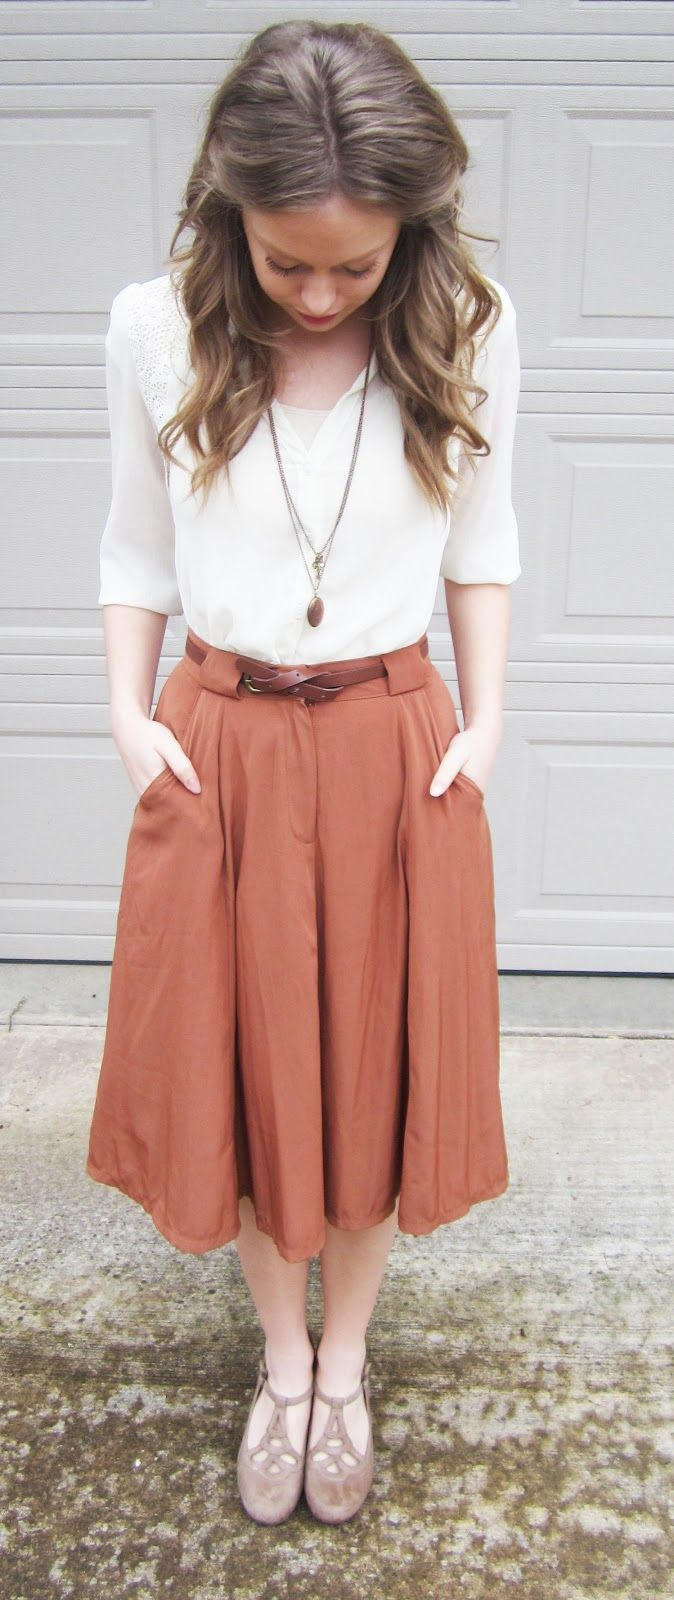 Kelly skirt inspiration